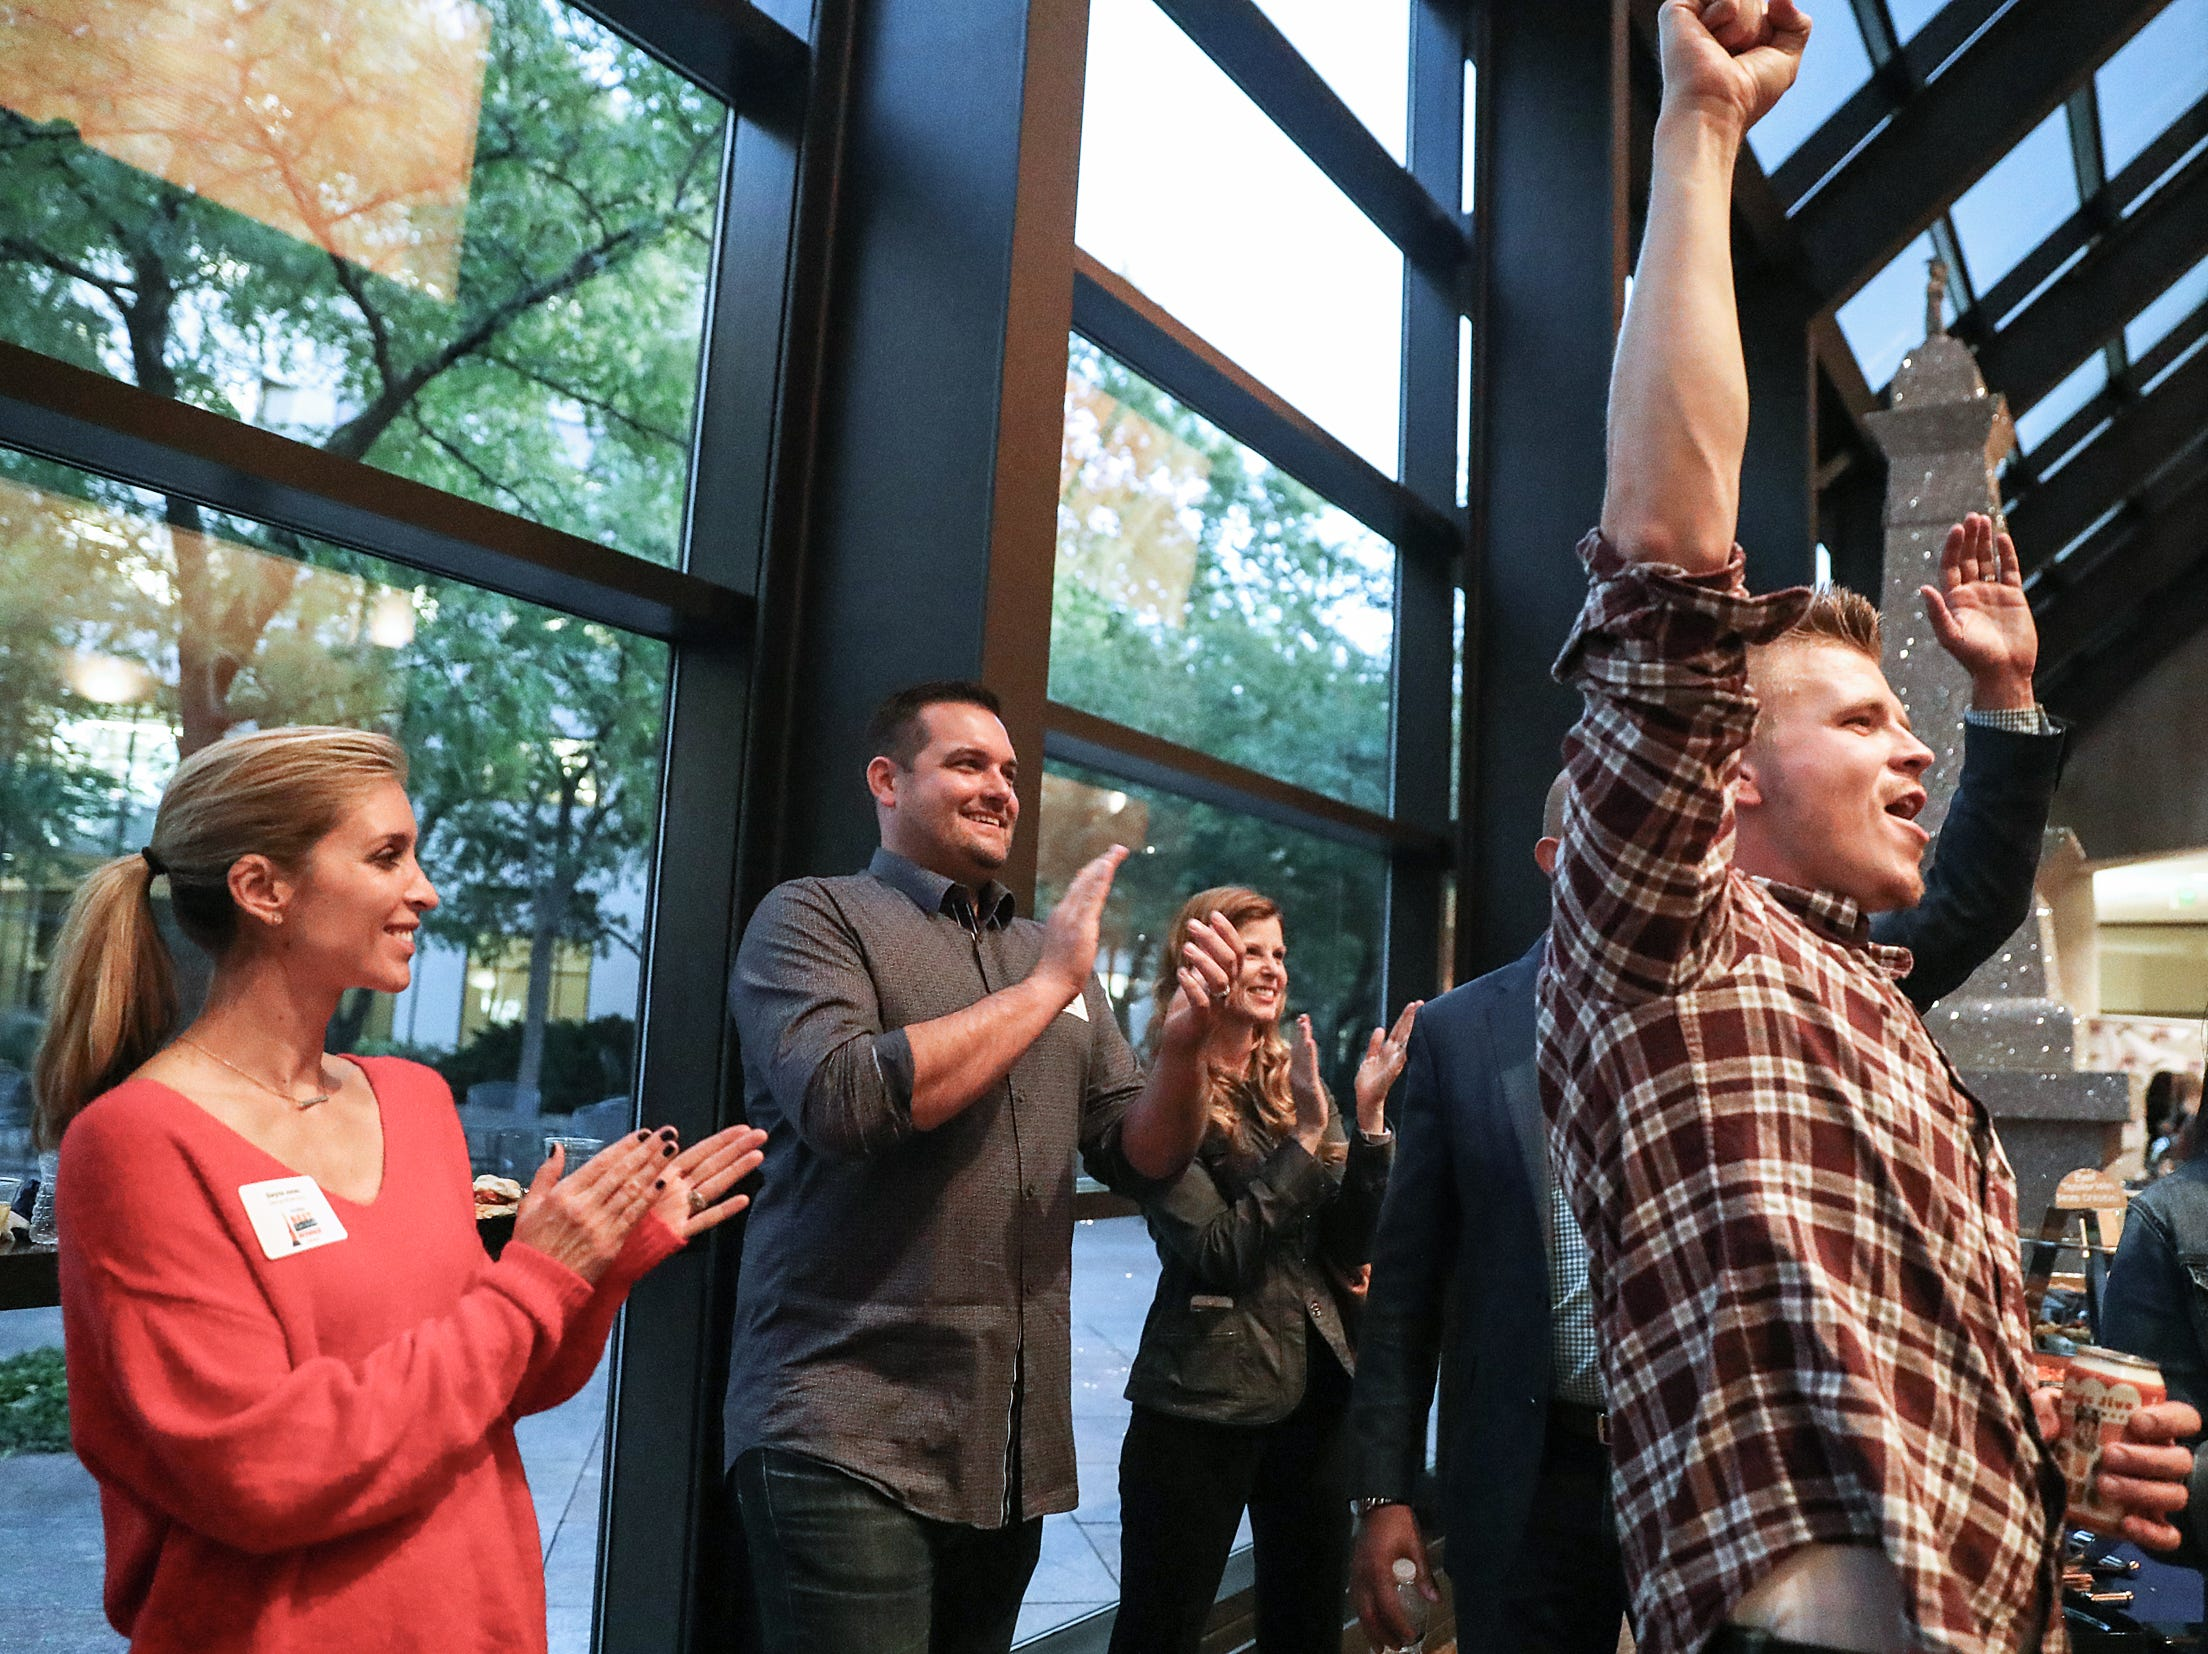 Second from left, Justin Jones and other employees, family and friends cheer as Georgia Street Grind is announced as winner for best local coffee shop during the inaugural Best Things Indy 2018 award ceremony, held by IndyStar at One America Tower in Indianapolis, Thursday, Sept. 27, 2018.